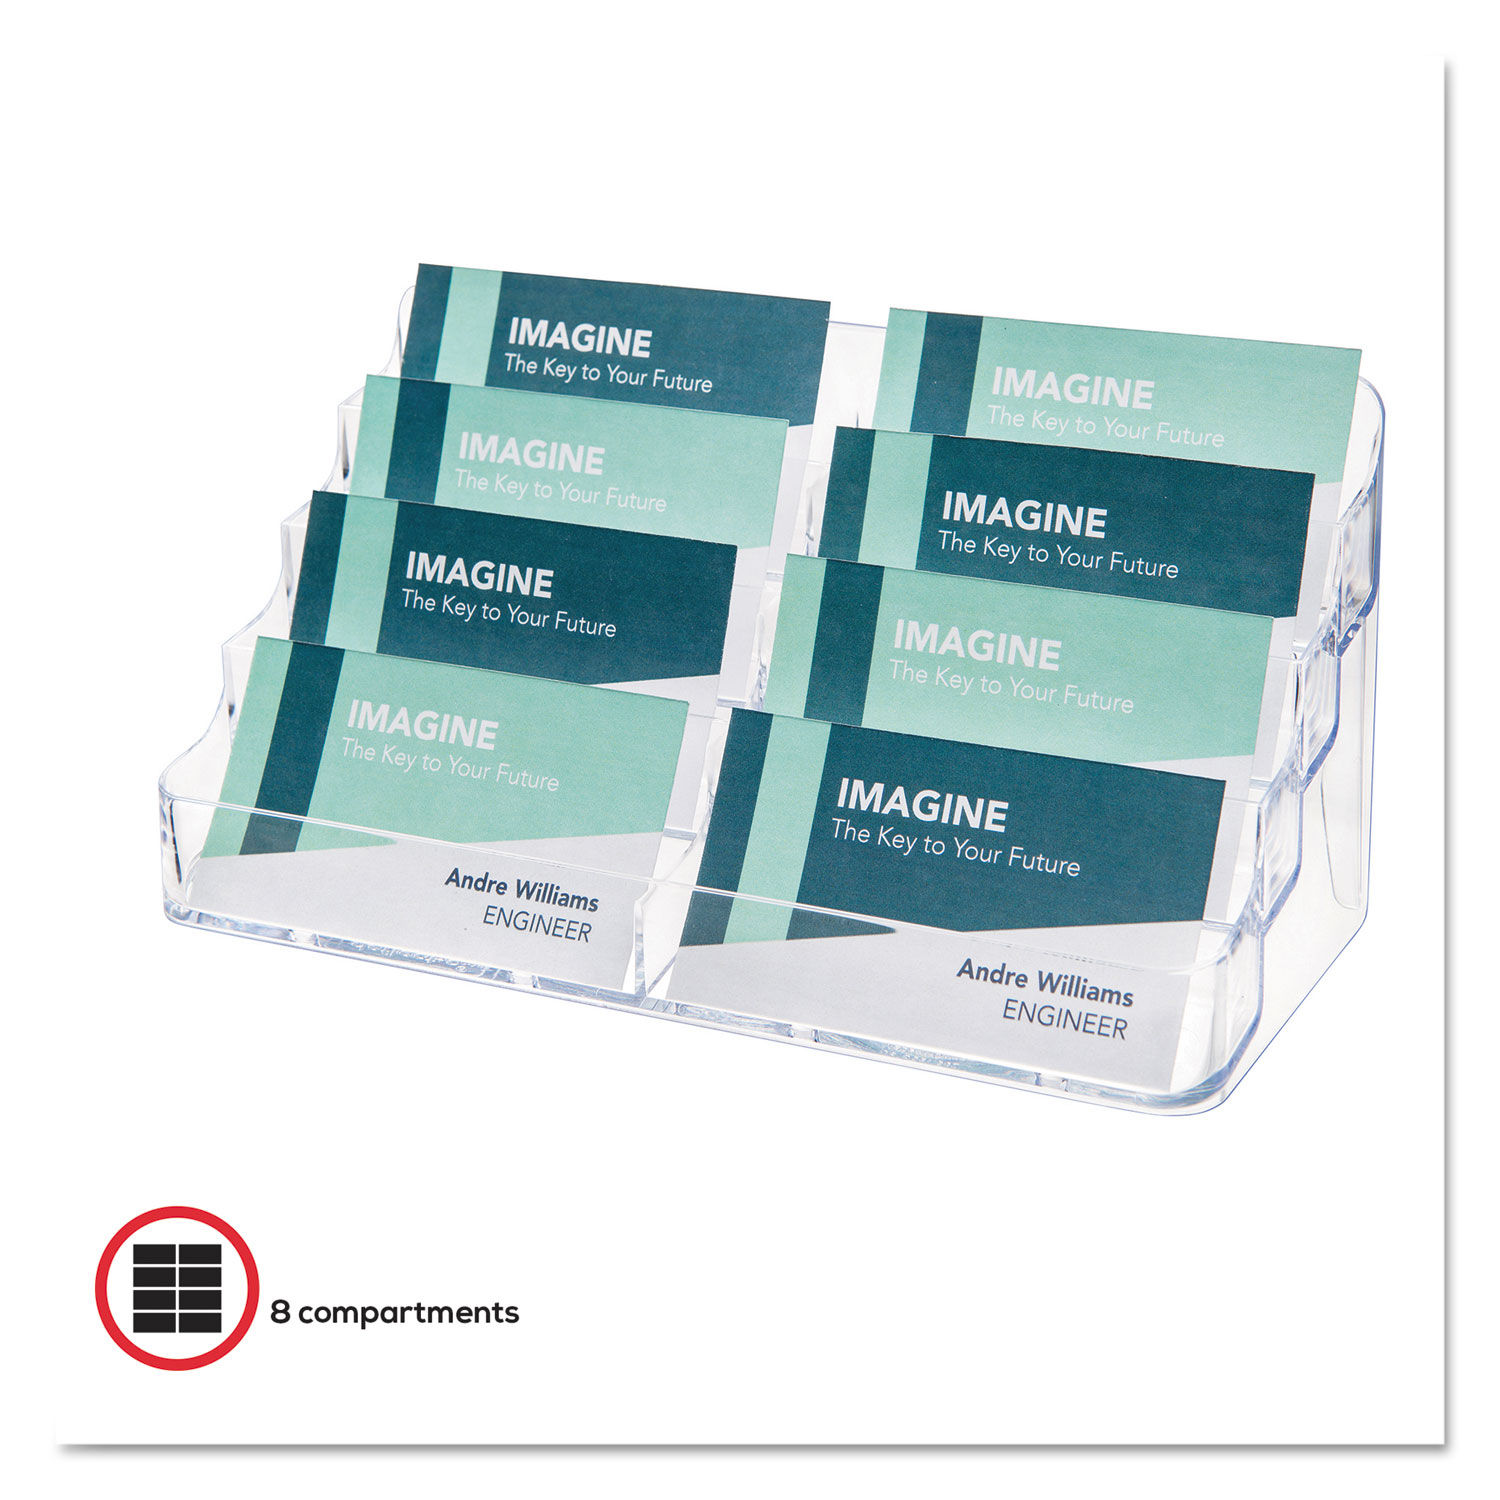 20 Pocket Business Card Holder, Holds 20 Cards, 20.2020 x 20.20 x 20.2020, Plastic,  Clear